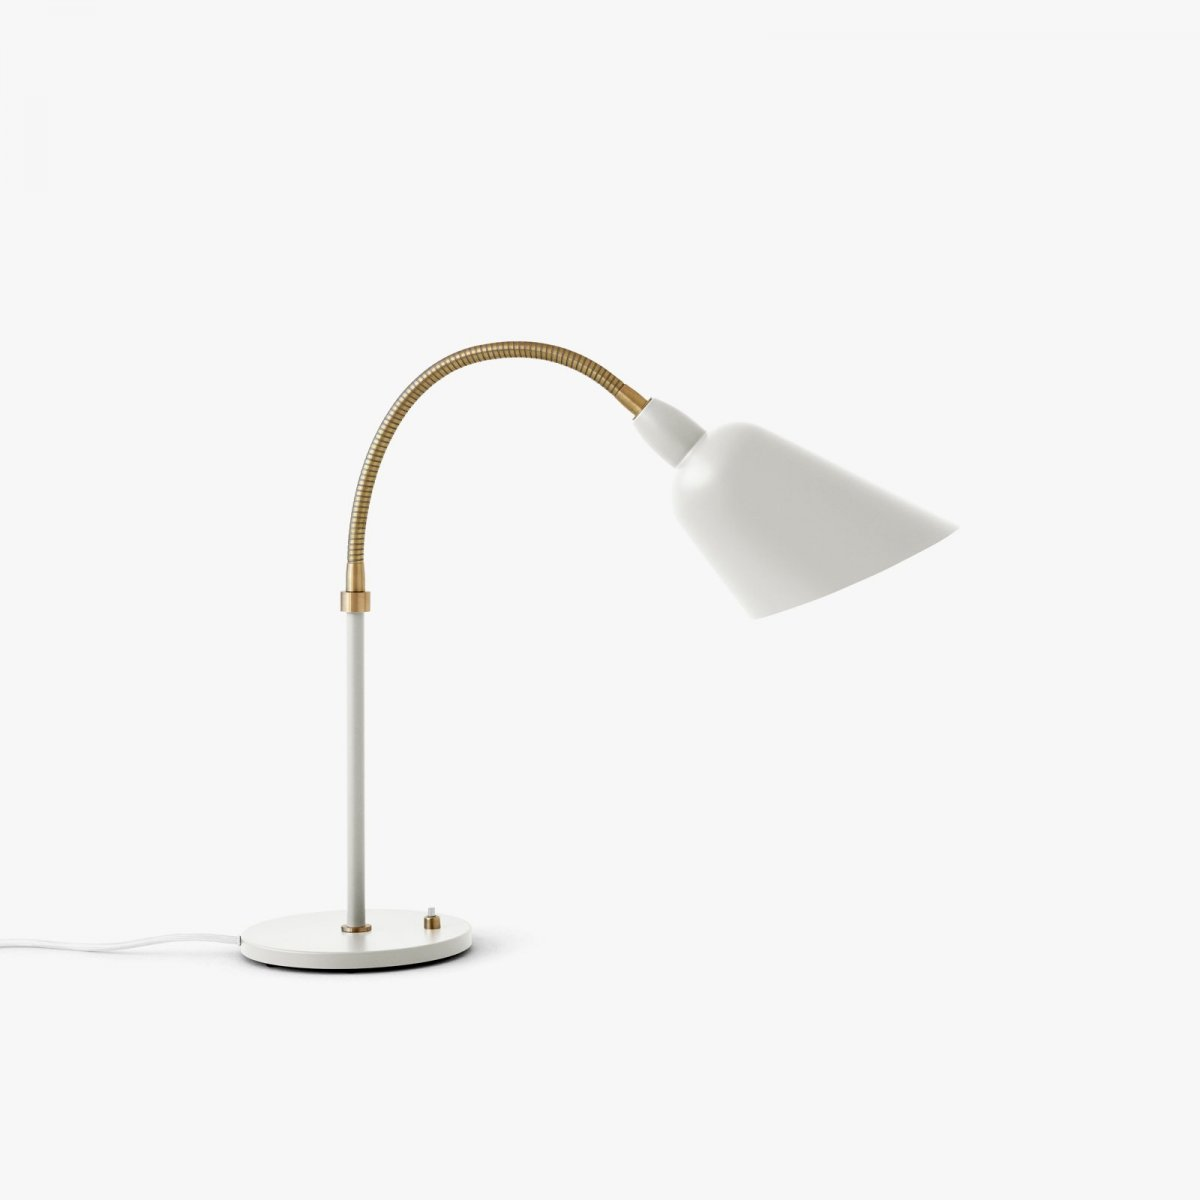 Bellevue AJ8 work lamp, ivory white + brass.